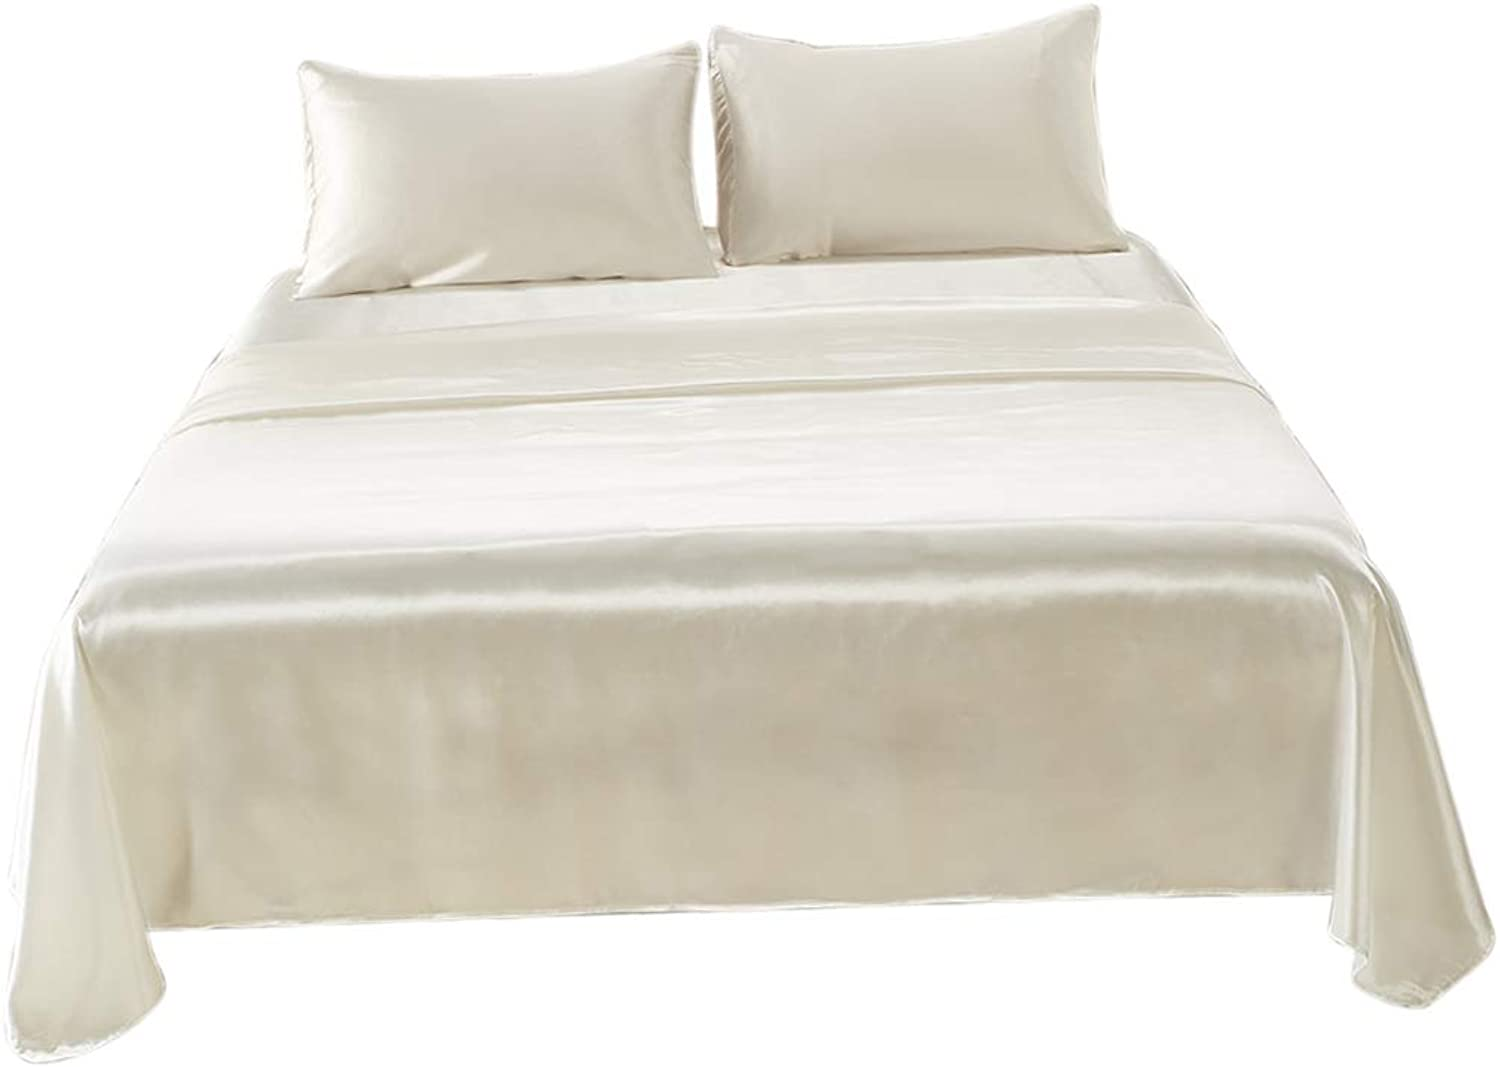 Baoblaze Bedding Sheets Set 3 4Piece, Hotel Quality Deep Pockets Fitted Sheet, Hypoallergenic & Soft Microfiber  White, King (4 Piece)